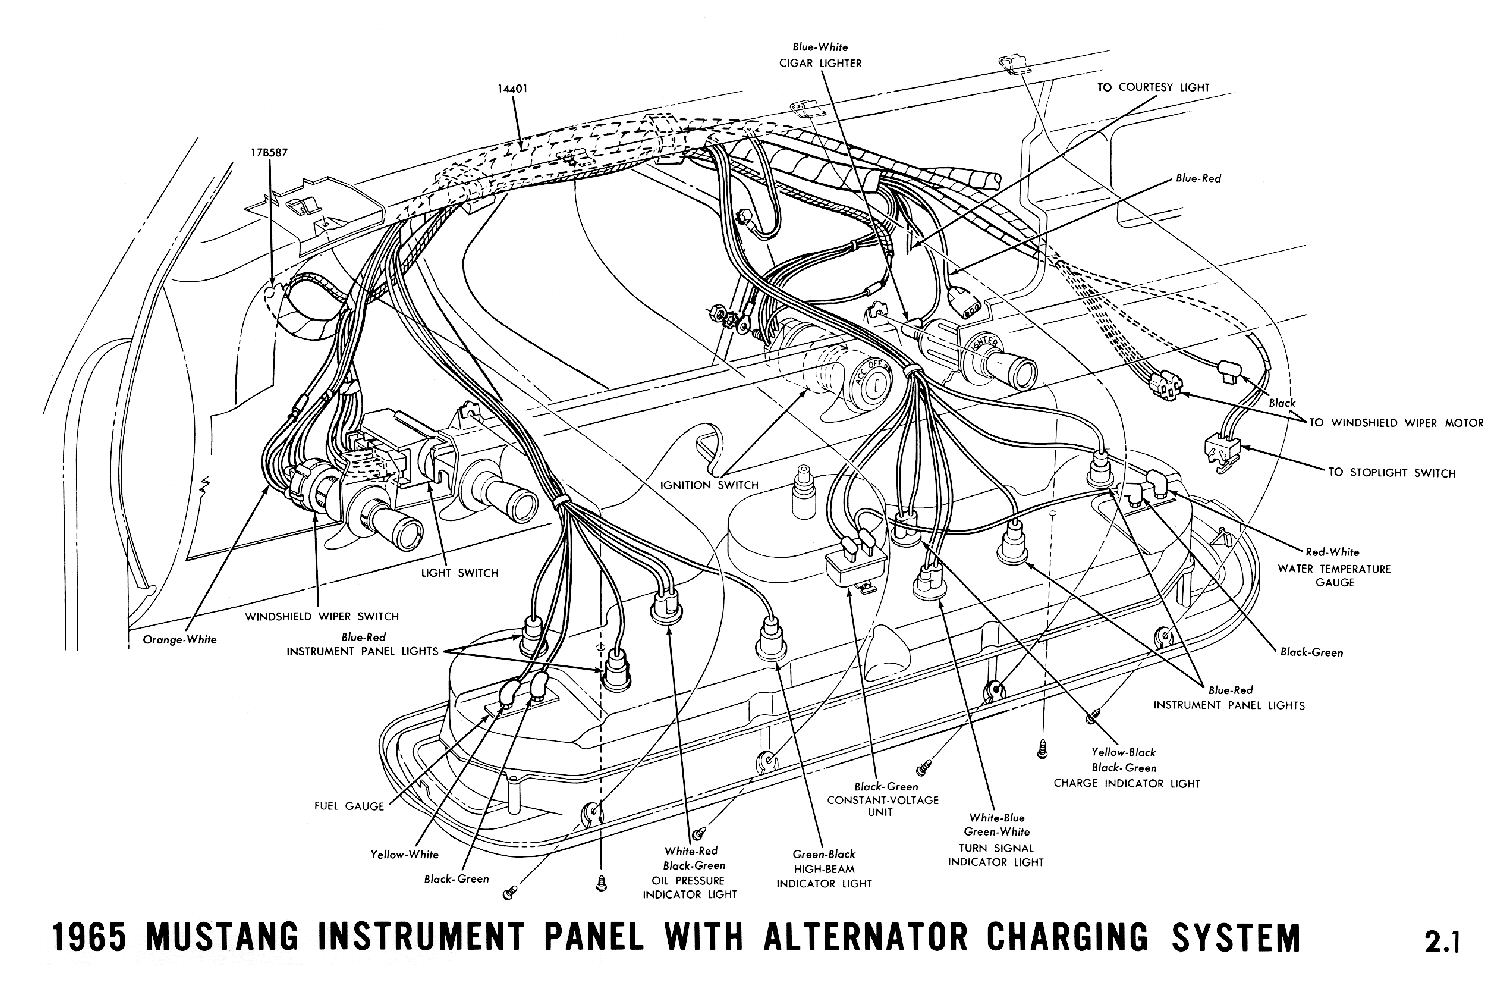 1965a 1965 mustang wiring diagrams average joe restoration 66 mustang ignition wiring diagram at soozxer.org